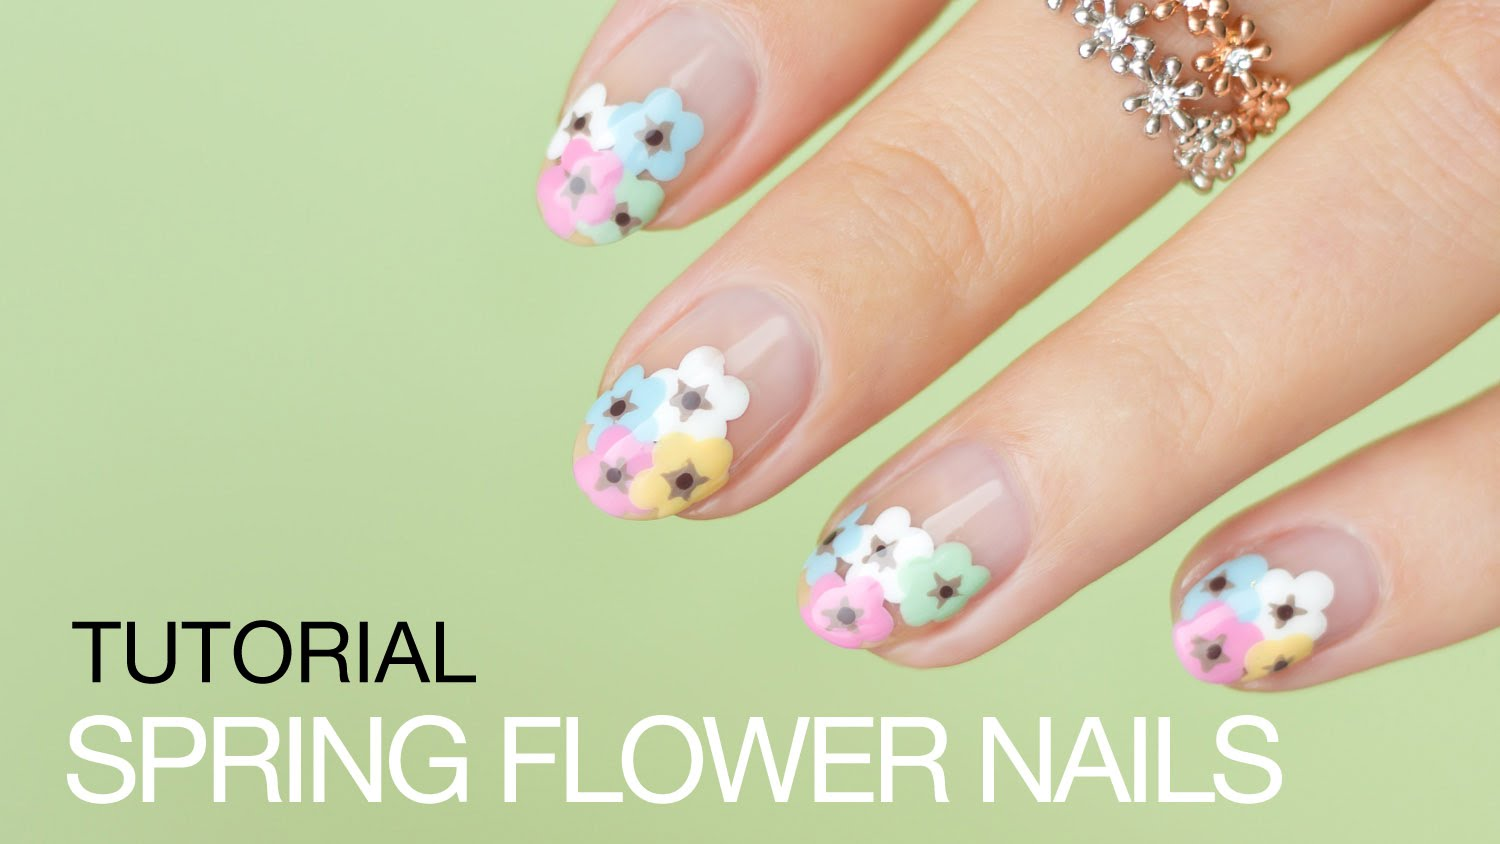 Colorful Fun Spring Flower Nail Art Tutorial Step By Step My Cup Of Tea